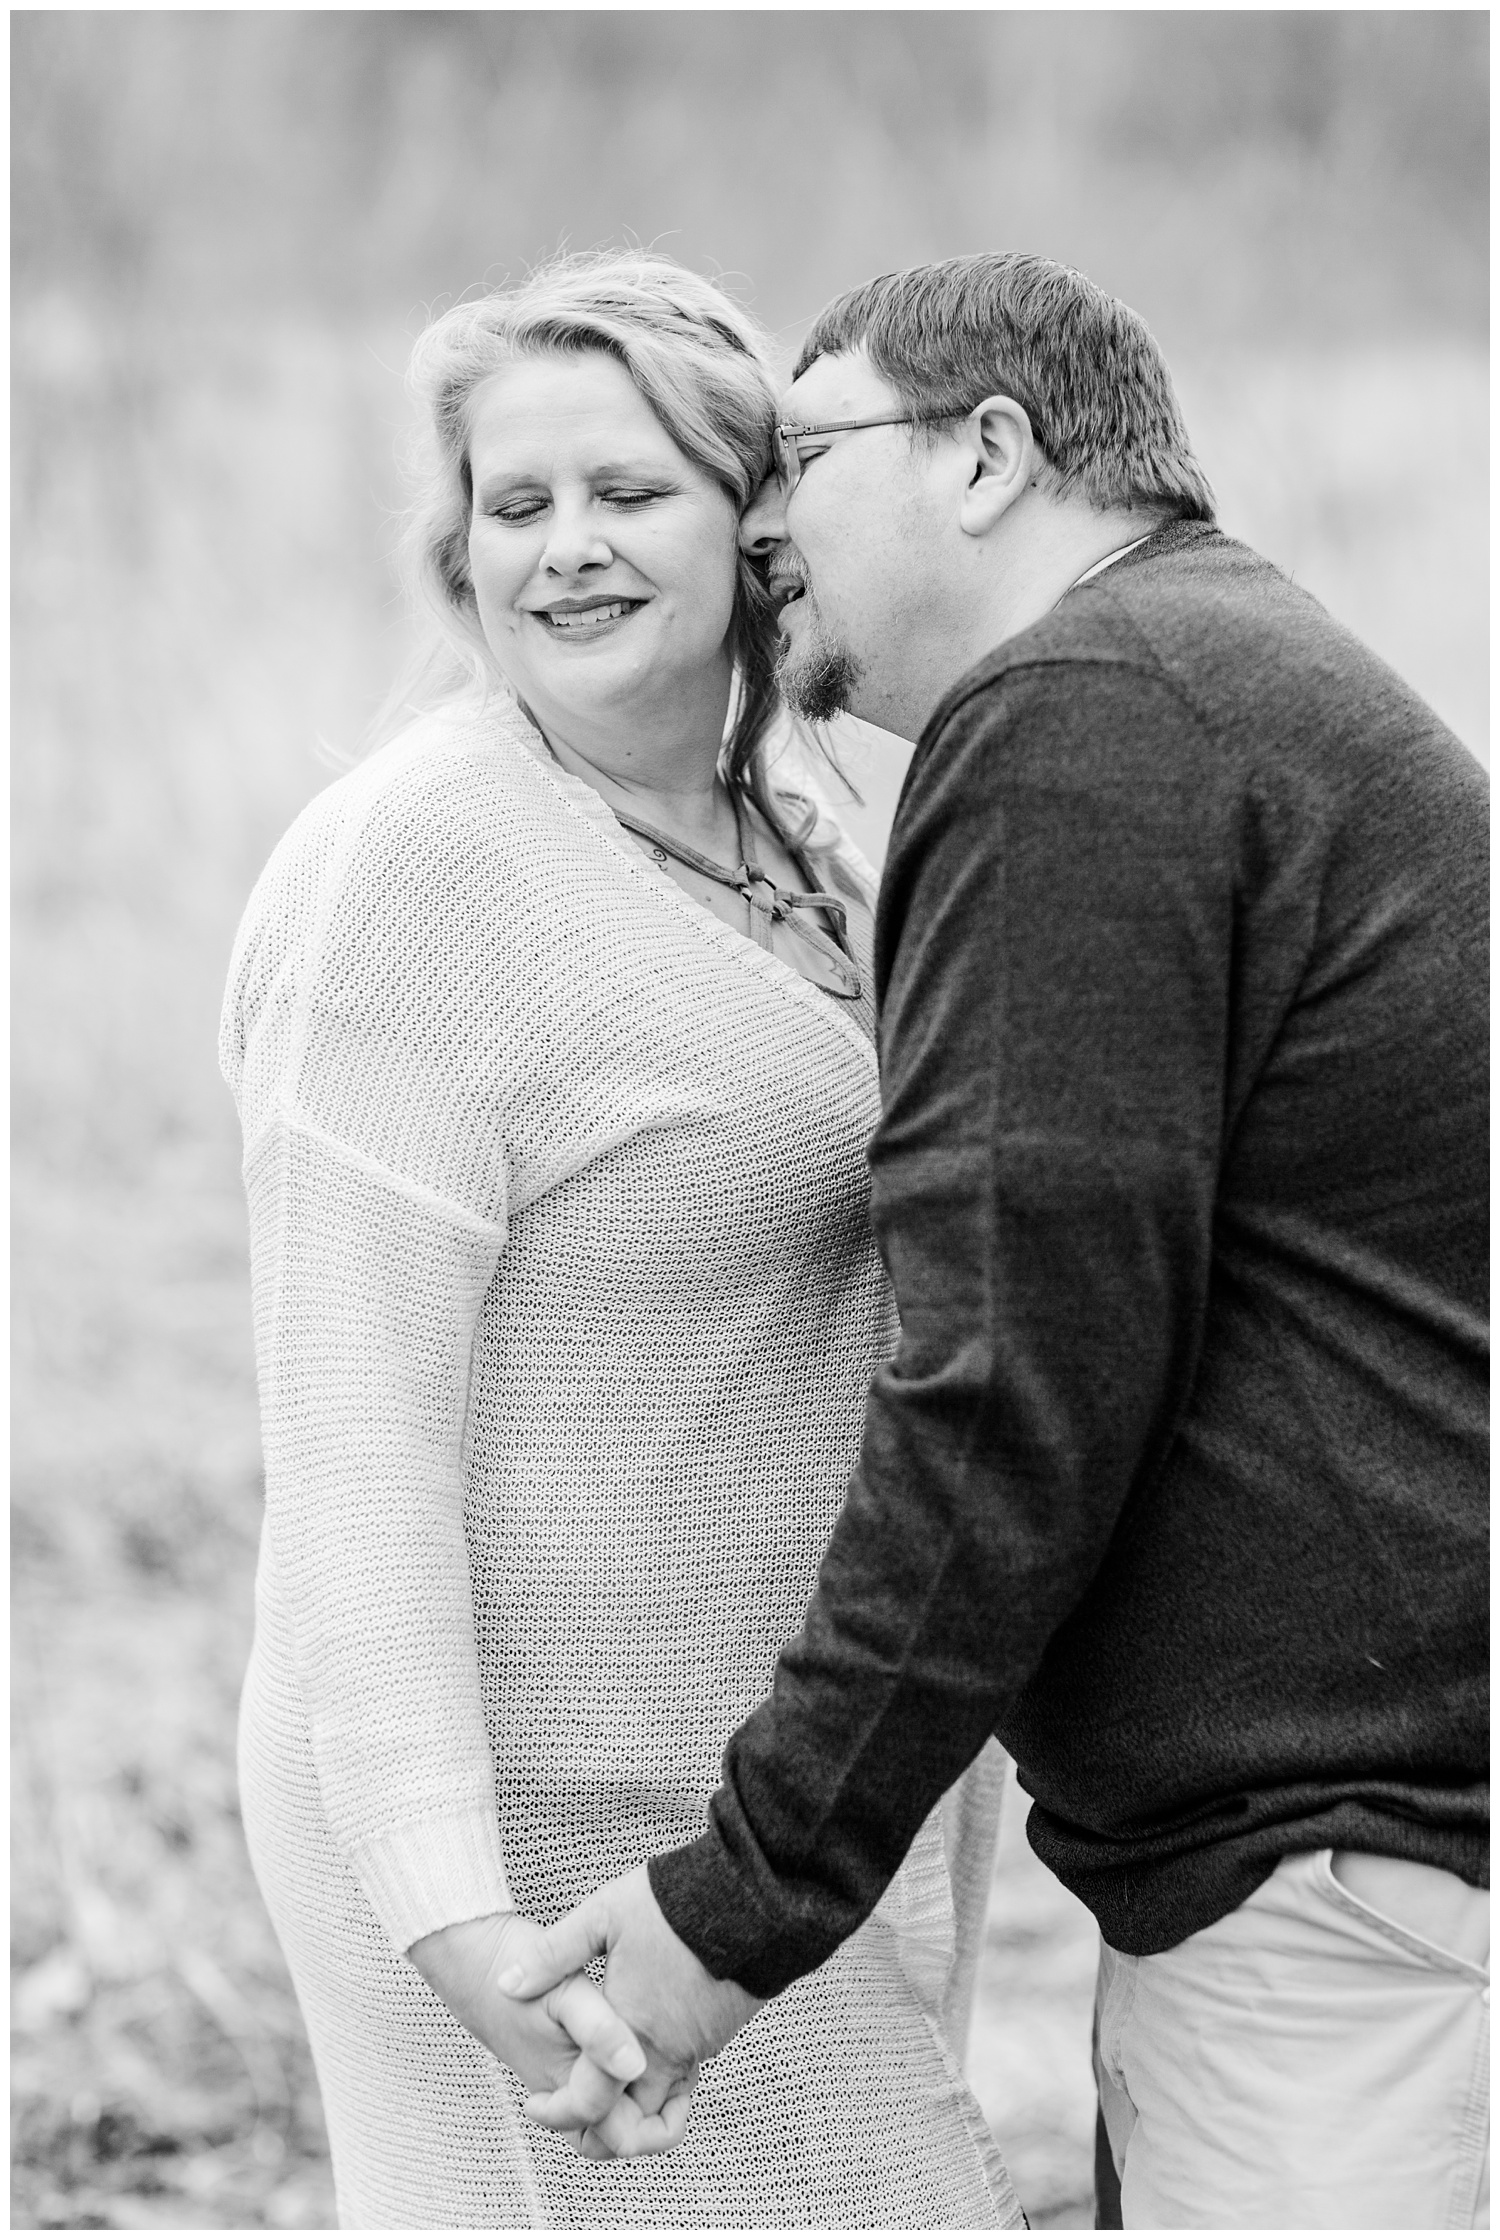 Engagement shoot in a grassy pasture in central Iowa in mid-March